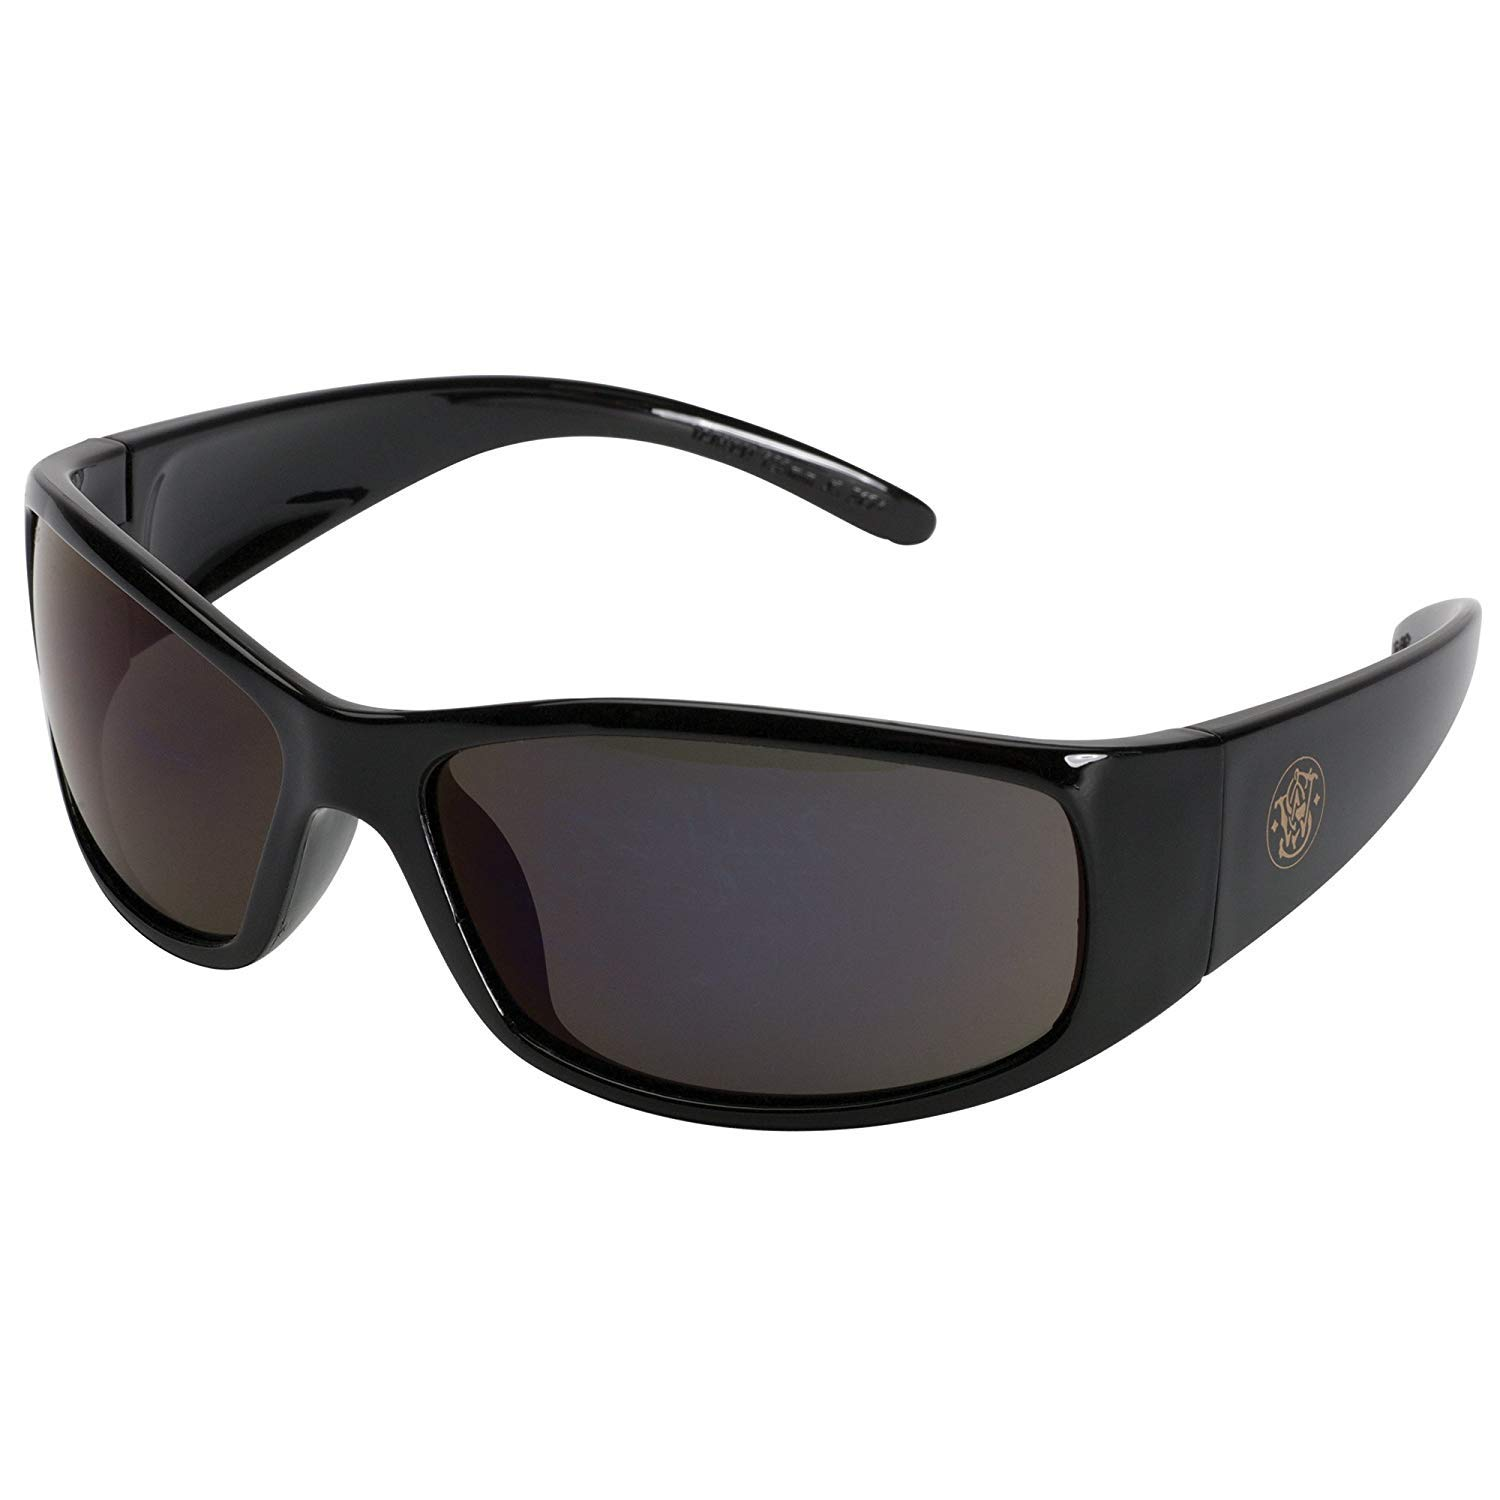 Safety Glasses (21303), Elite Safety Sunglasses, Smoke Anti-Fog Lenses with Black Frame by Smith & Wesson